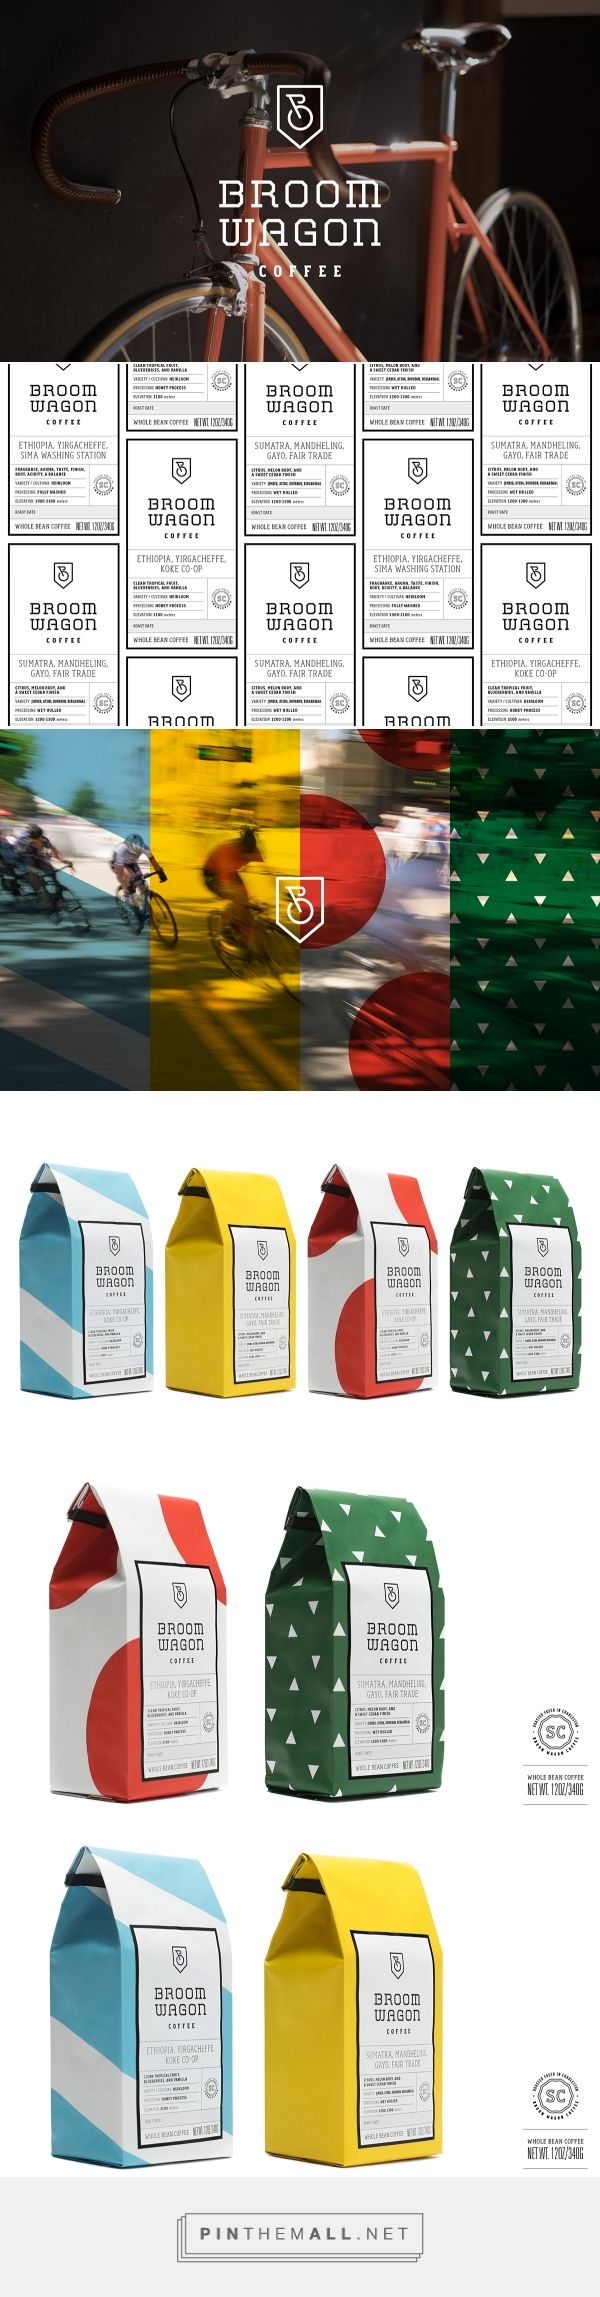 Branding packaging and typography for broom wagon coffee brand packaging on behance by cody